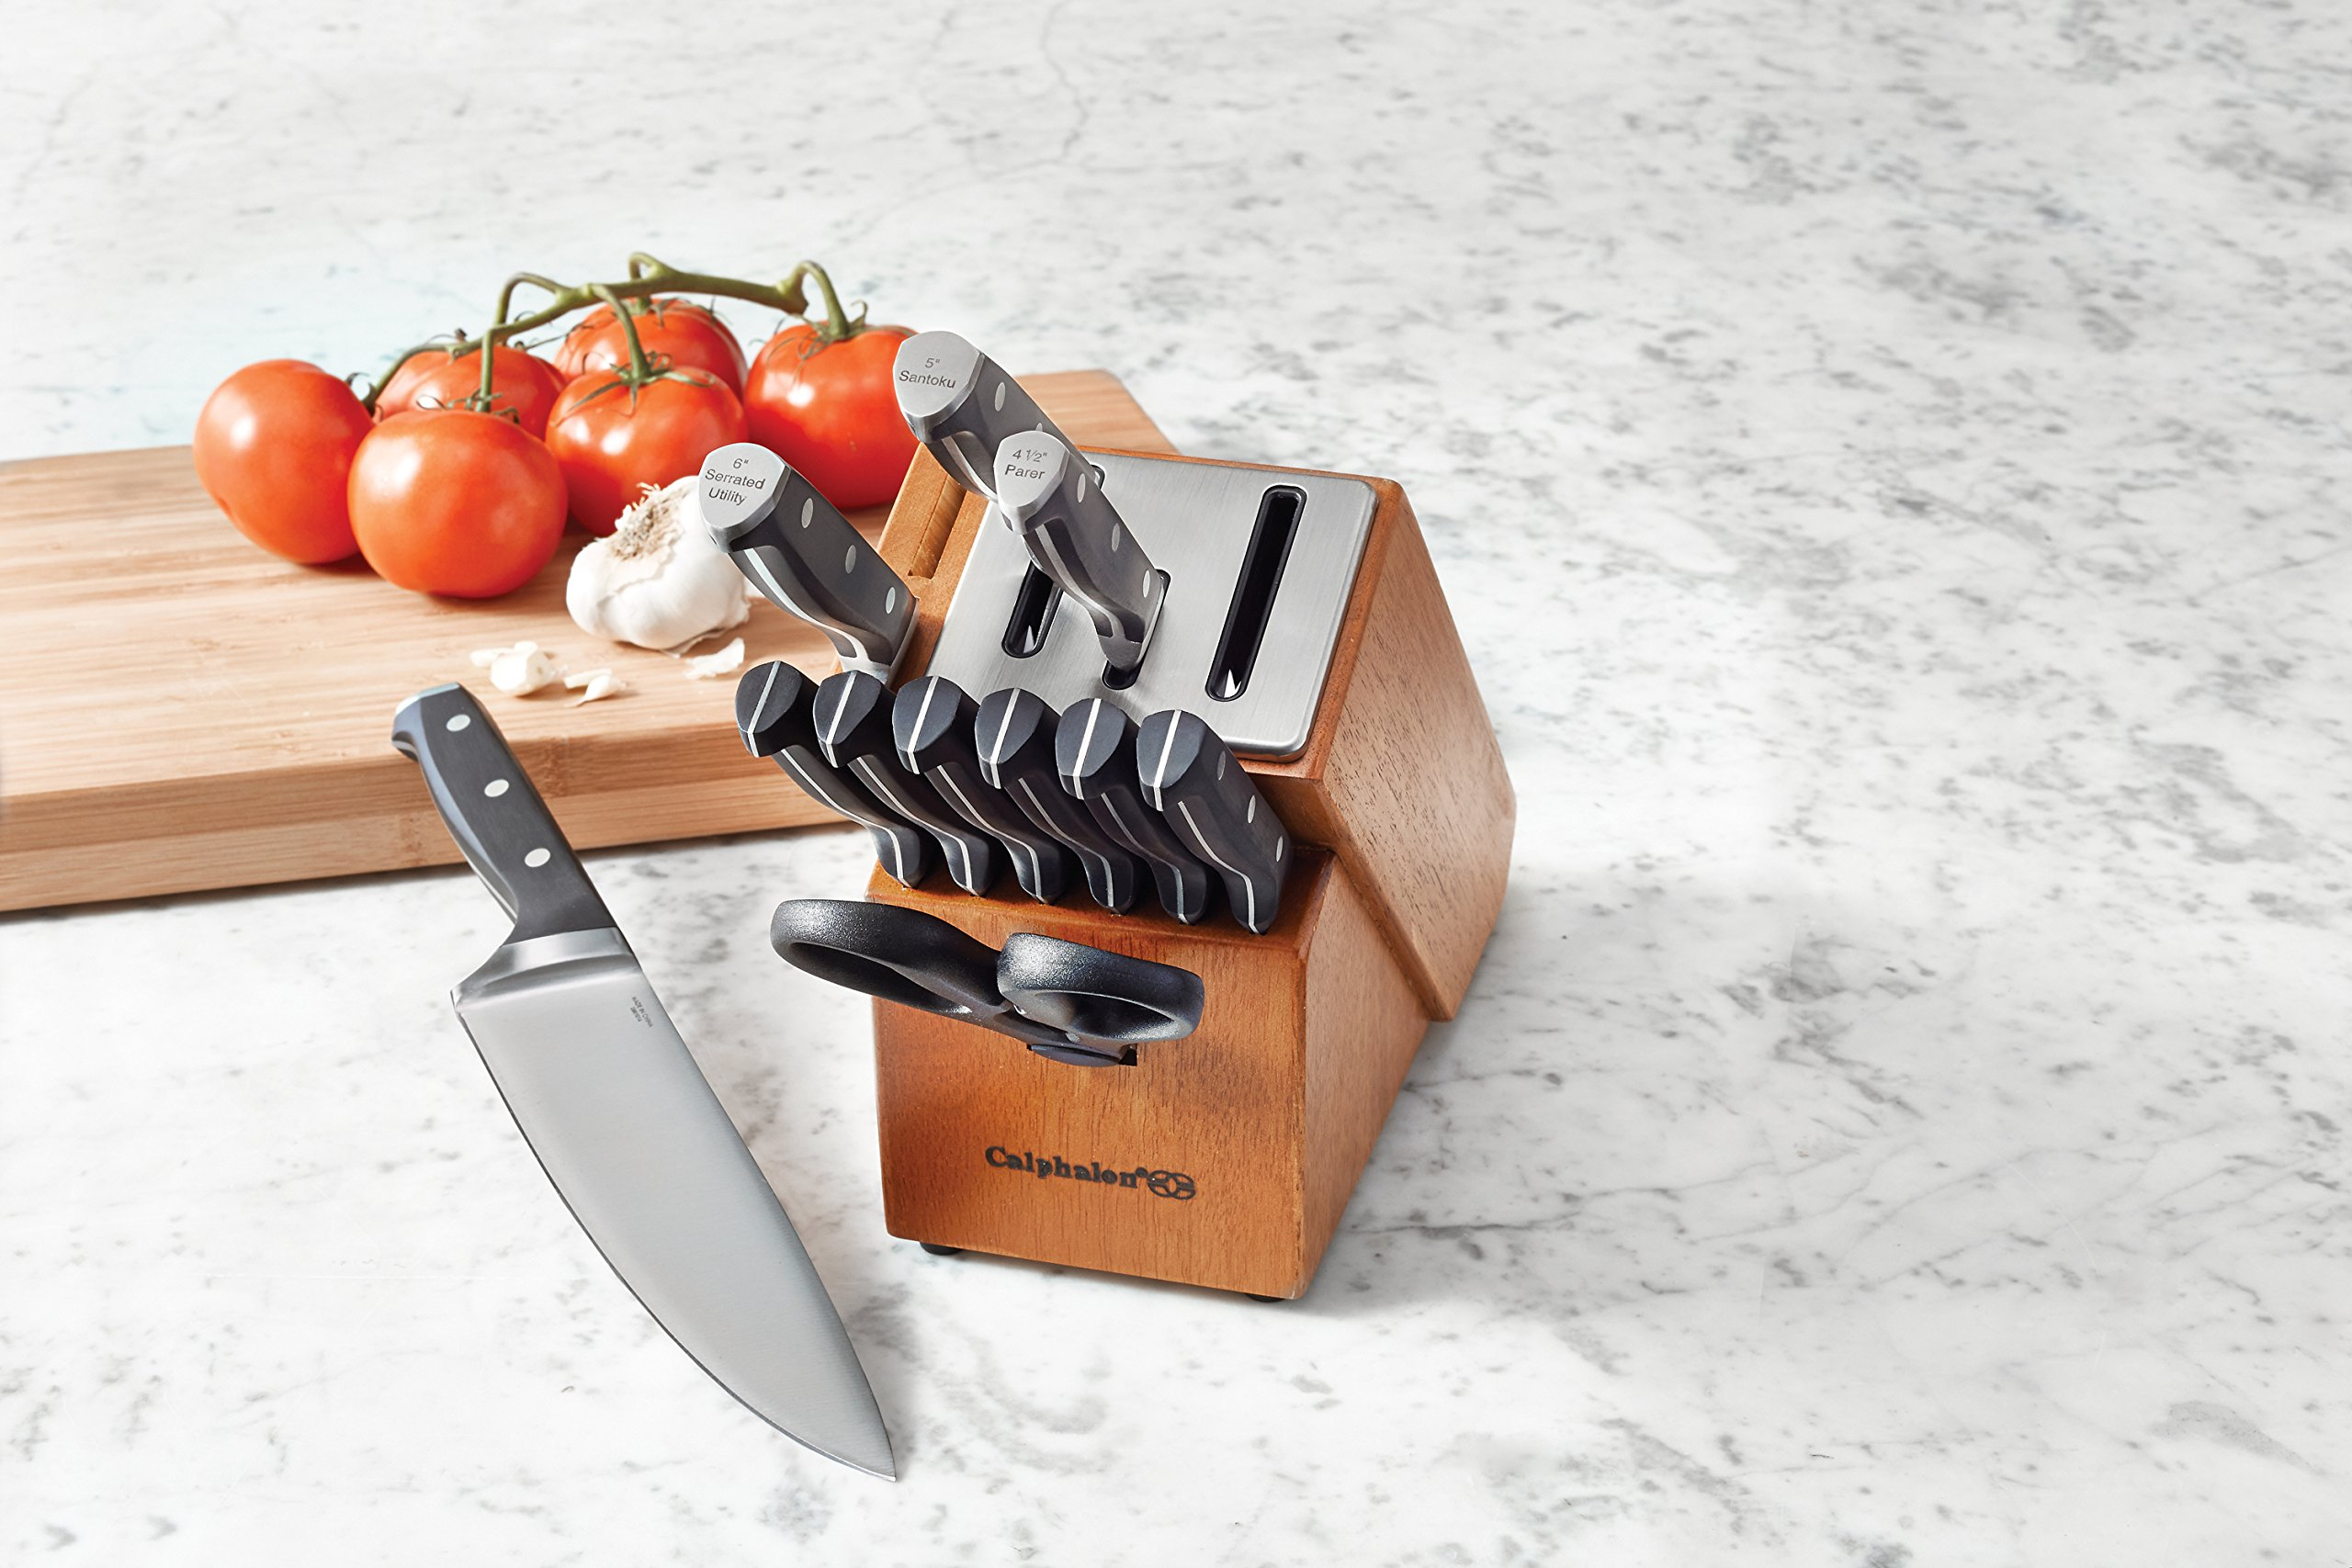 Calphalon Classic Self-Sharpening Cutlery Knife Block Set with SharpIN Technology, 12 Piece by Calphalon (Image #5)